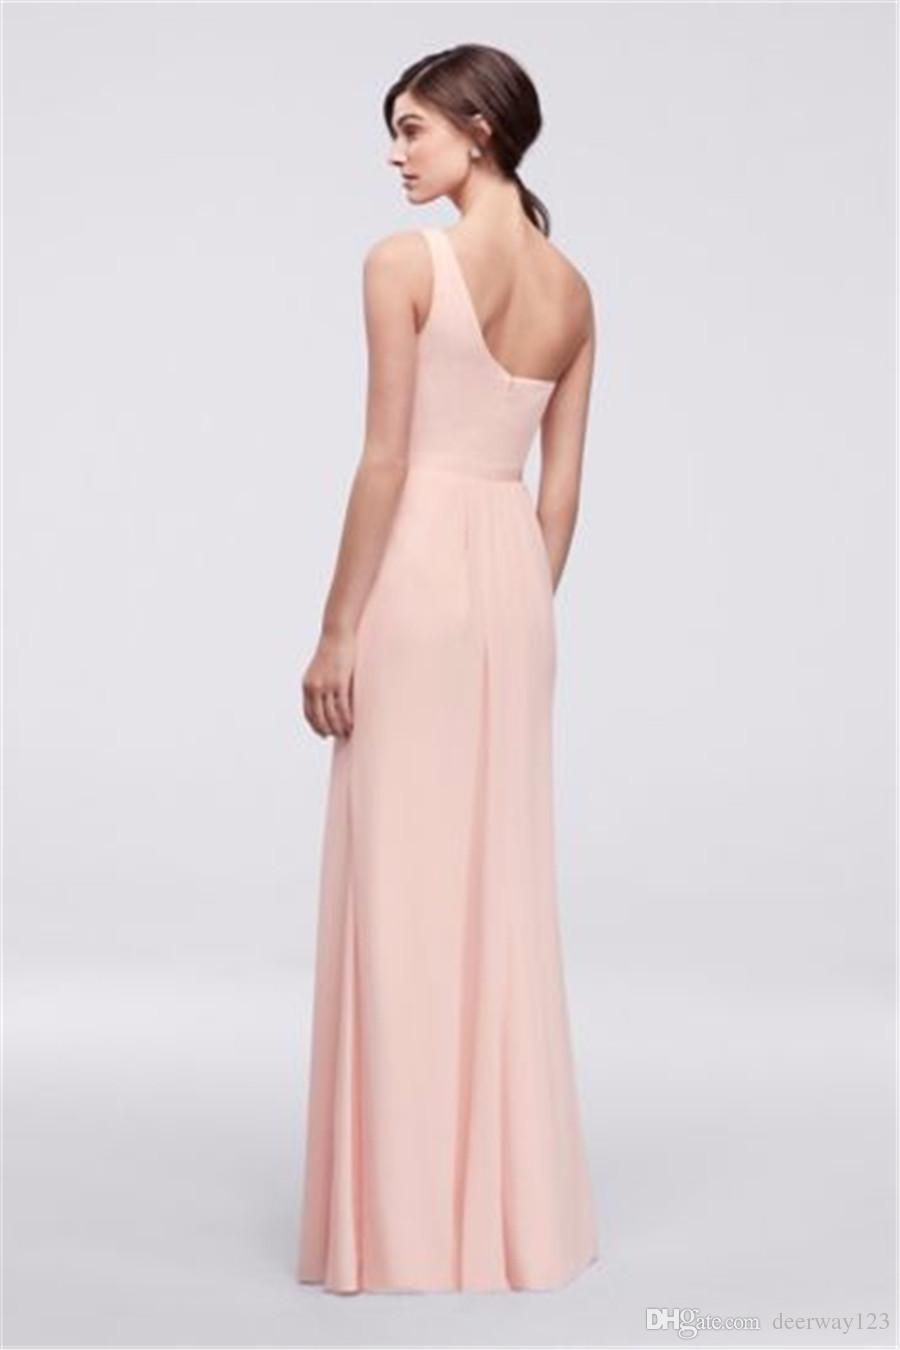 Side-Ruched One-Shoulder Plain Chiffon Floor Length Bridesmaid Dress POB17003 Wedding Party Dress Evening Dress Formal Dresses